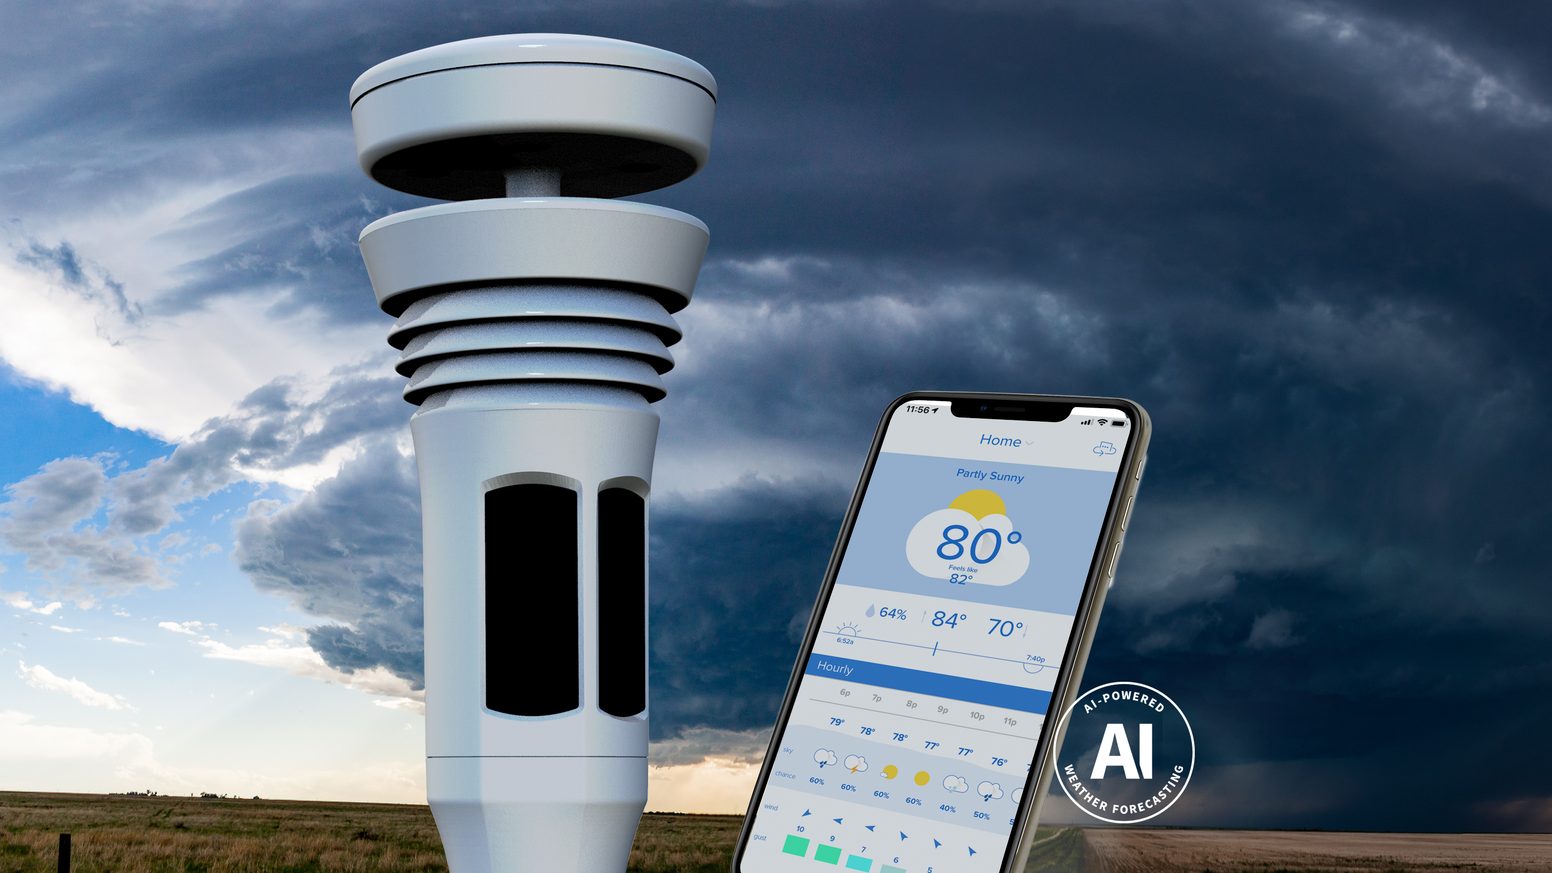 A cutting-edge weather station and AI-powered app provide you a better forecast. Share data with meteorologists everywhere.